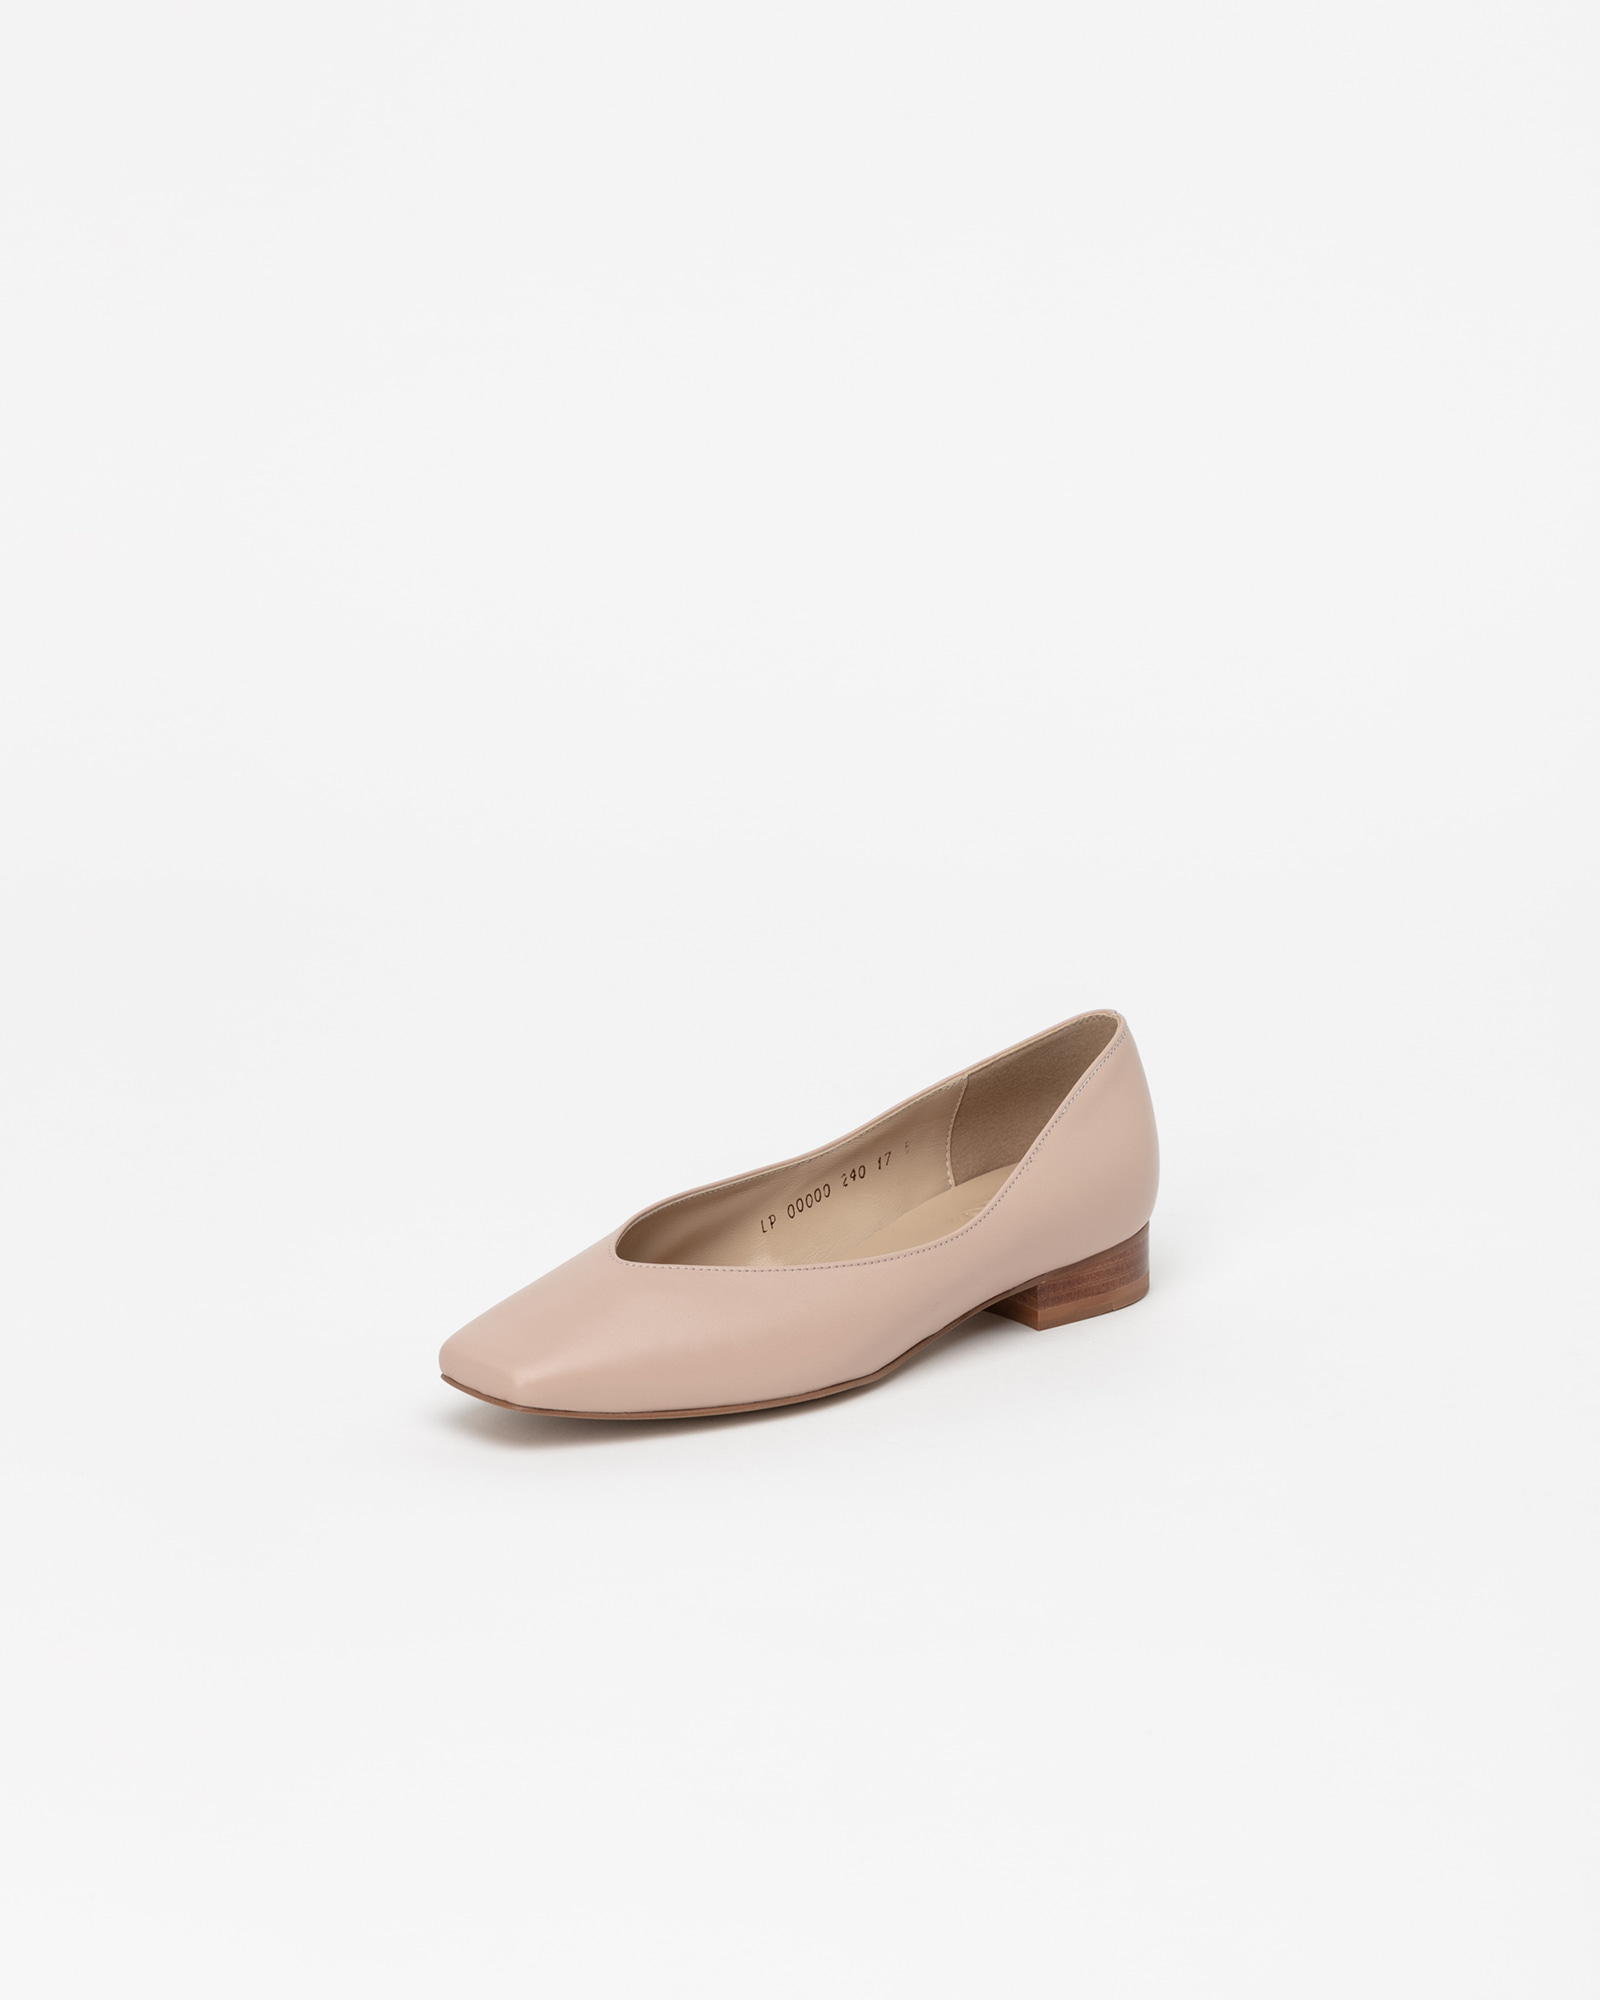 Purin Flat Shoes in Baby Pink